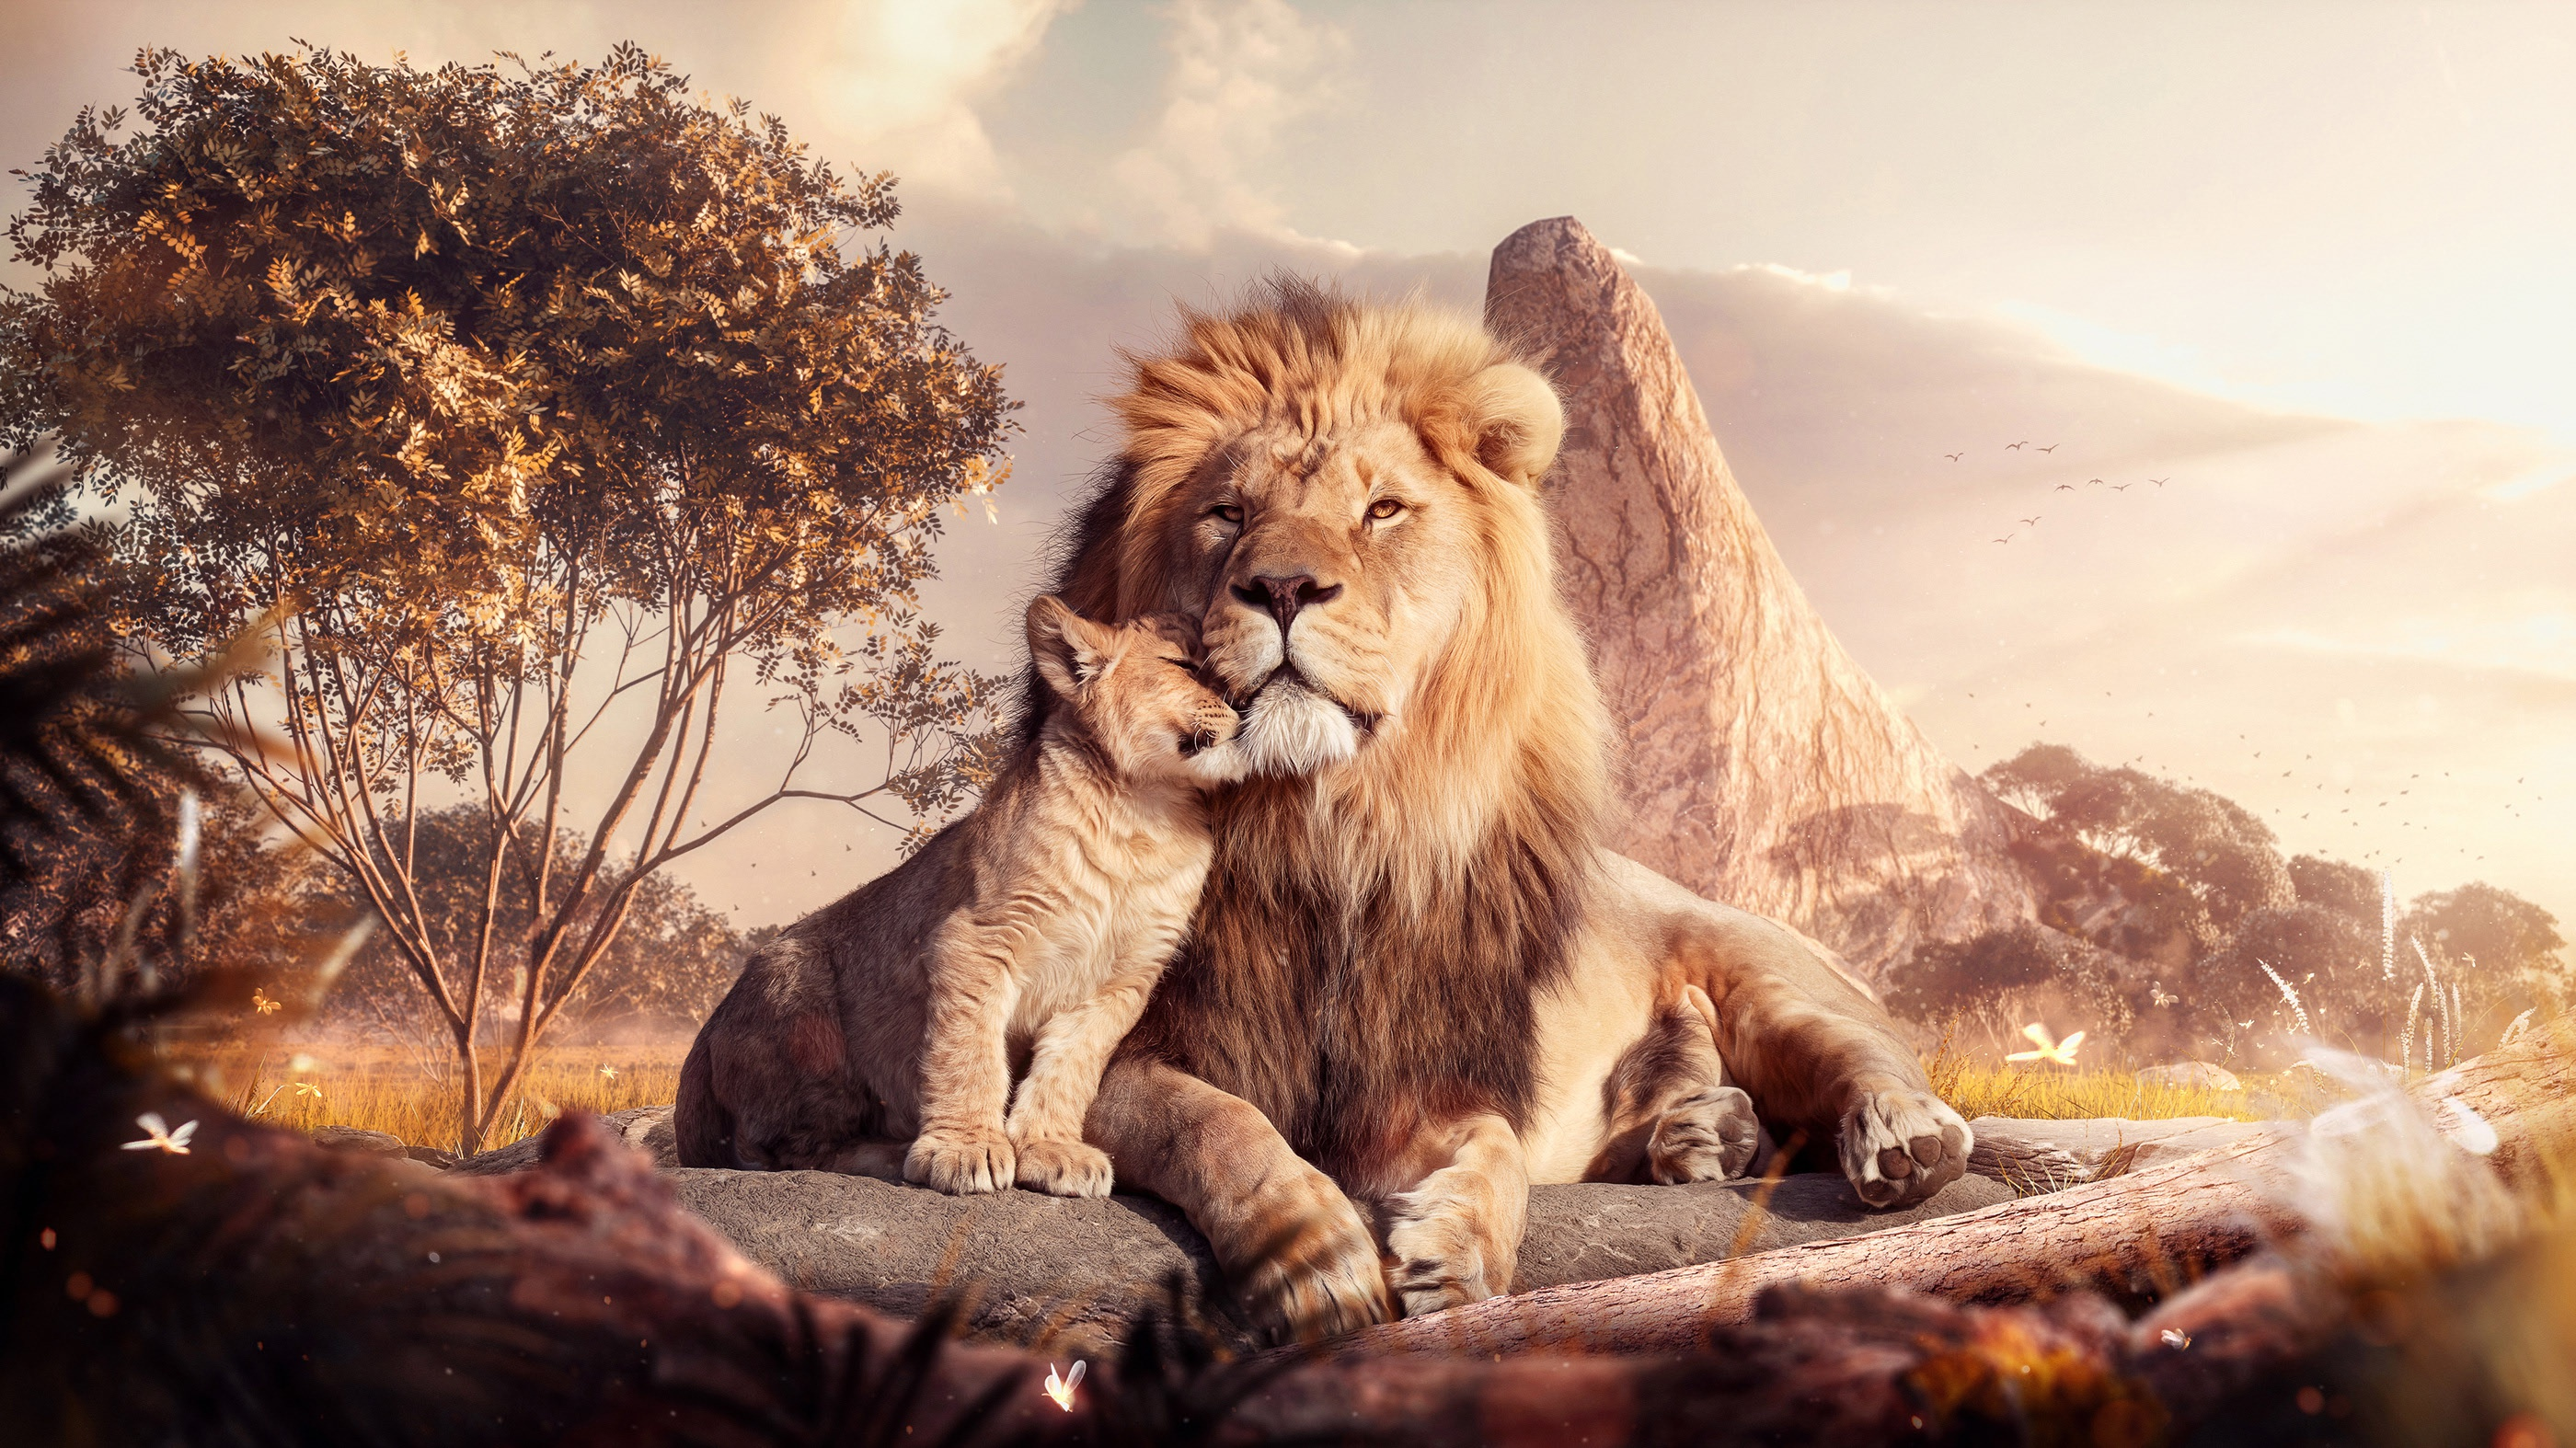 The Lion King (2019) HD Wallpaper | Background Image ...